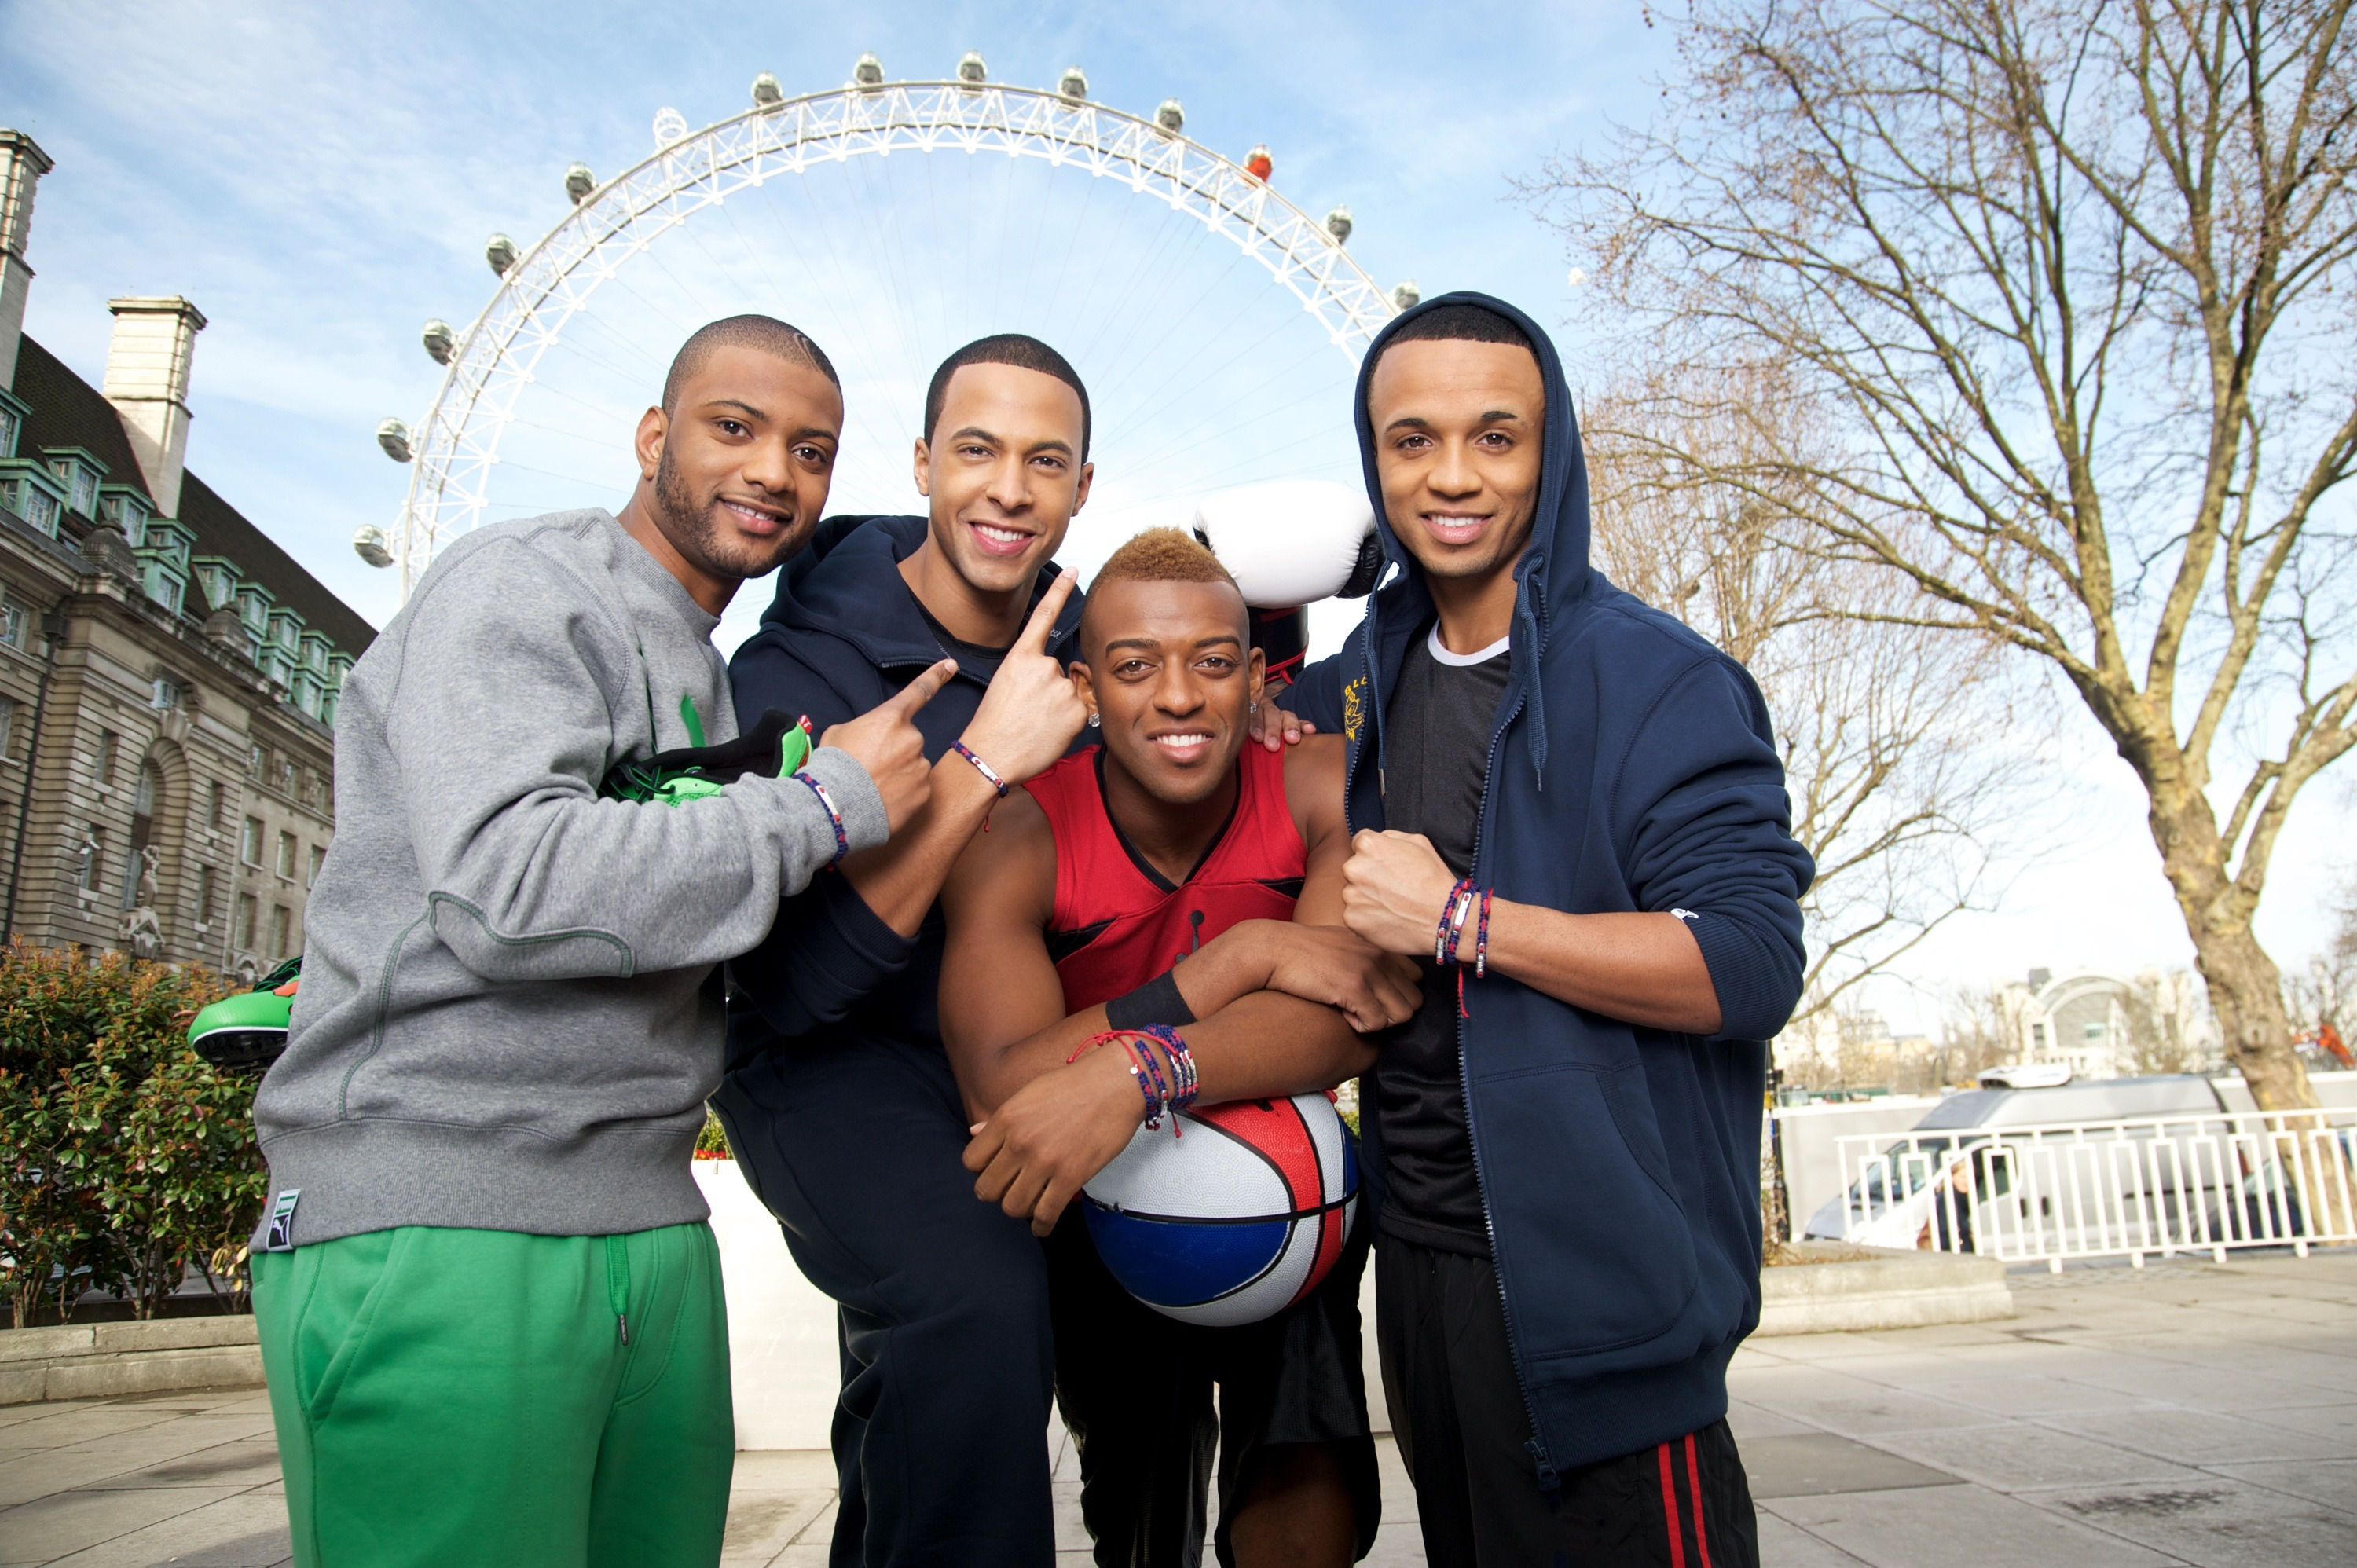 In this handout image provided by Links of London (L-R) Jonathan 'JB' Gill, Marvin Humes, Oritse Williams and Aston Merrygold of the band JLS pose for pictures wearing their Links of London Team GB Bands on March 8, 2012 in London, England. The Links of London Team GB band is on sale from www.linksoflondon.com